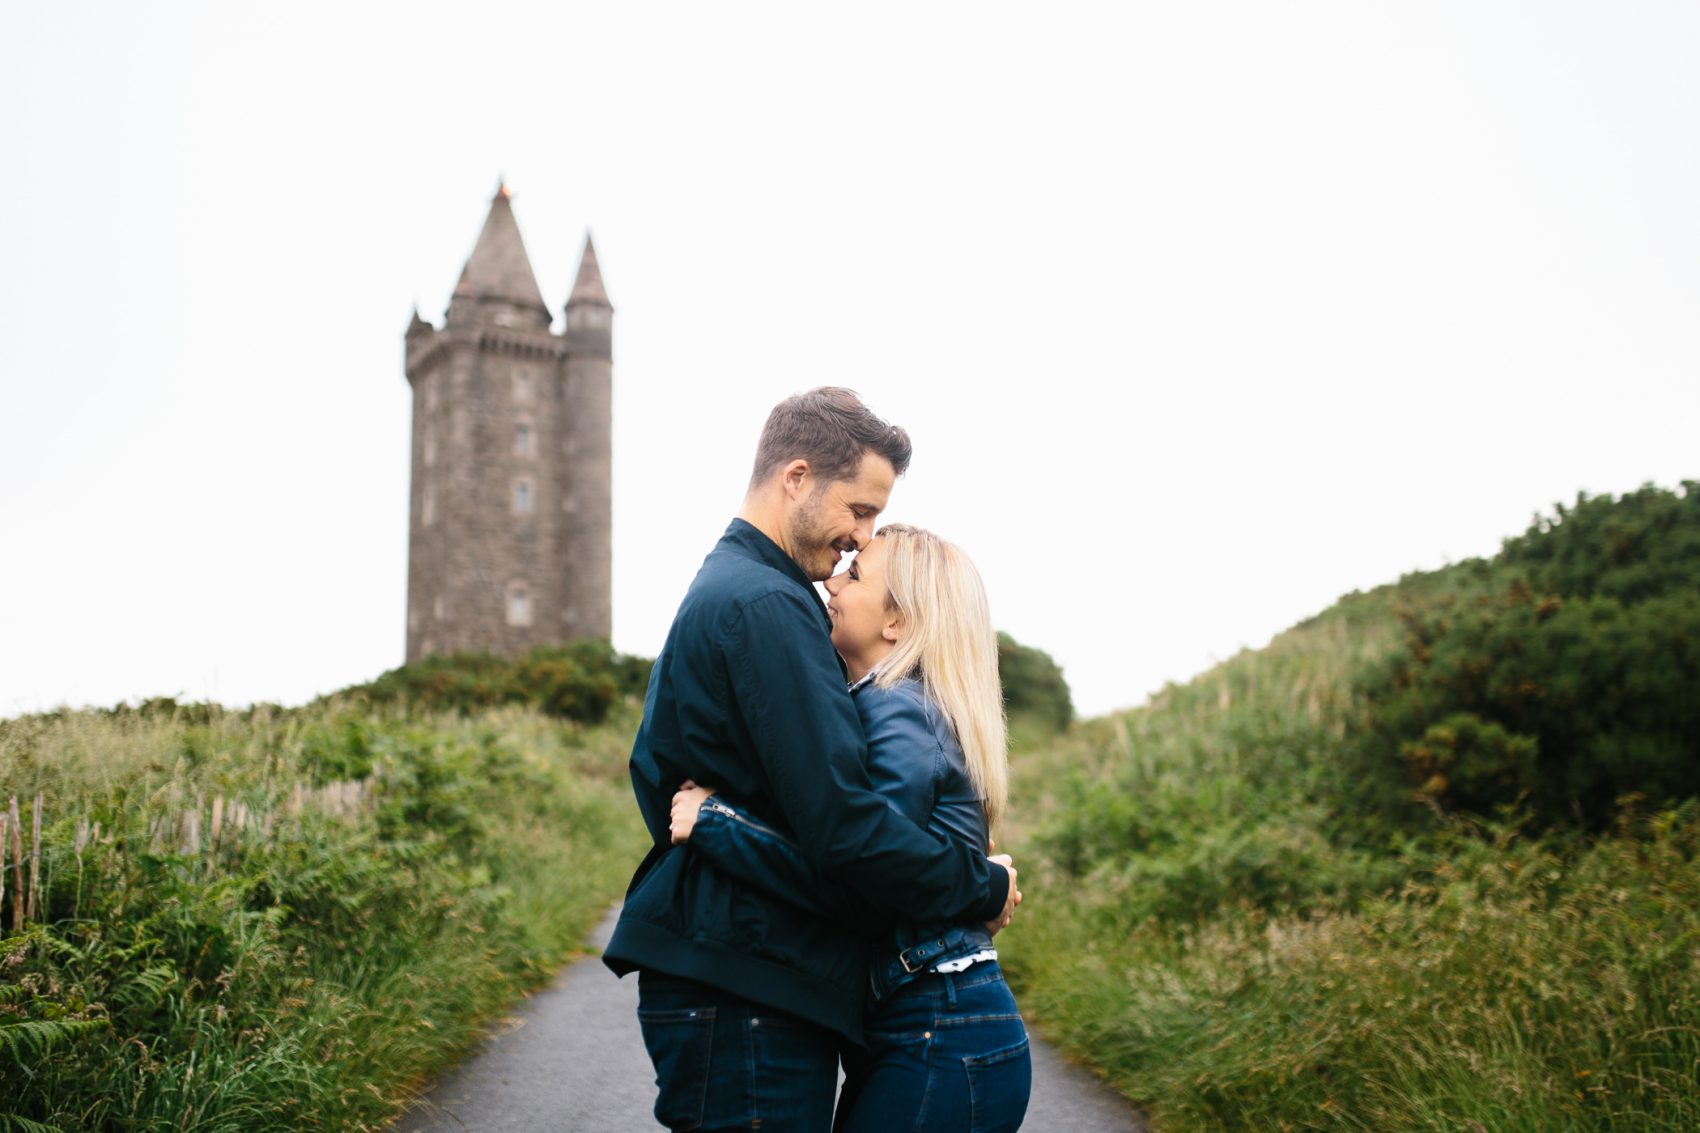 becky-taylor-1-1700x1133 Becky & Taylor Engagement // Scrabo Tower